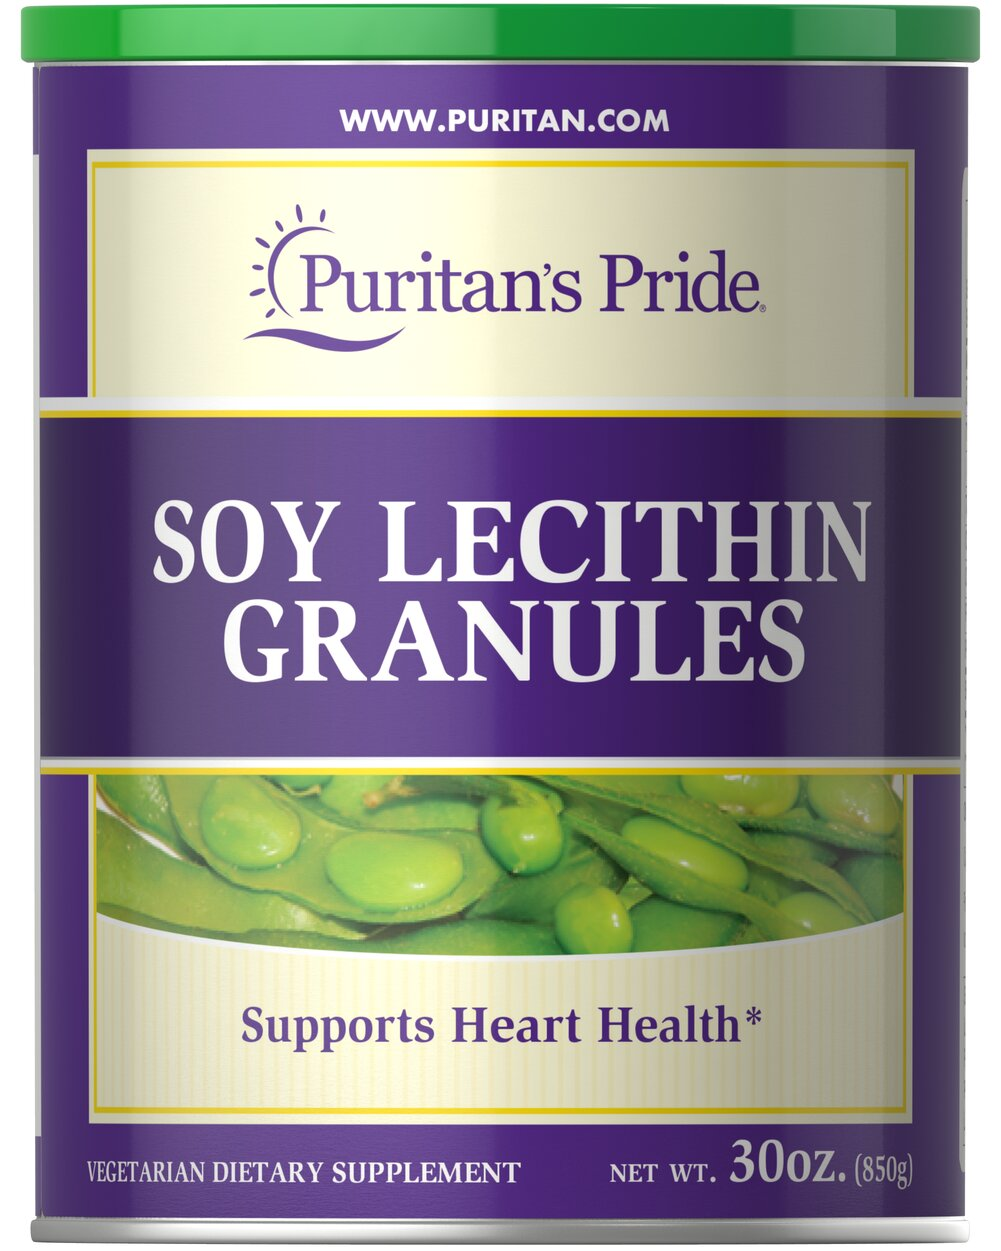 Soy Lecithin Granules 1680 mg <p>95% SOY PHOSPHATIDES </p><p>Finest Quality</p> <p>Supports Mental Function & Nerve Cell Health**</p><p>Lecithin is an important natural source of choline, inositol, and linoleic acid. Choline and Inositol are vital components of all cell membranes, and play important roles in cell growth and function.**</p> 30 oz Granules 1680 mg $36.99